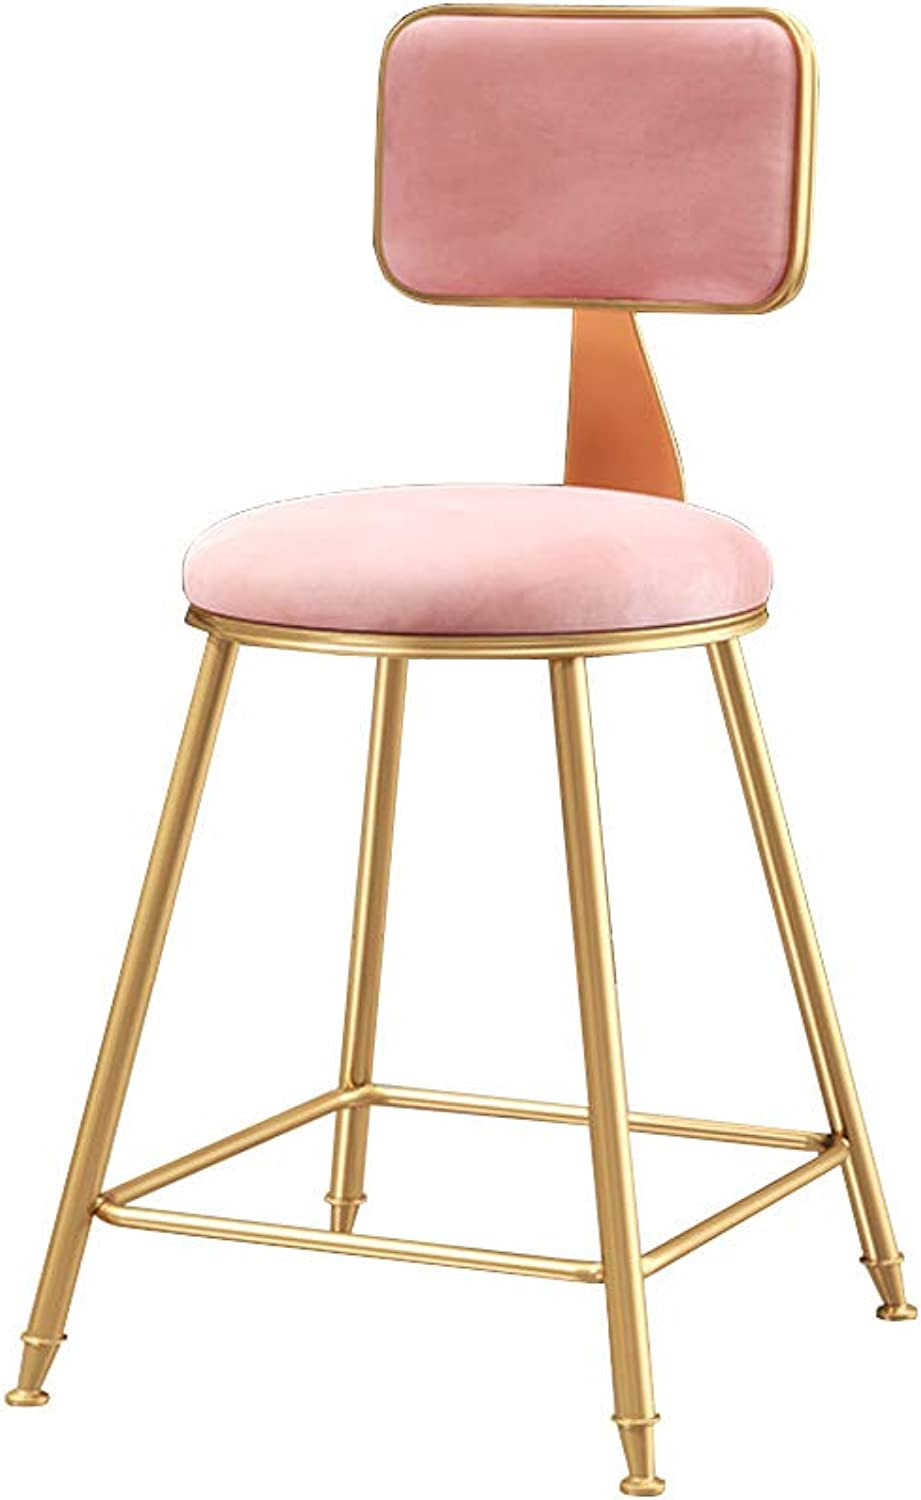 Modern Bar Stools with Back Counter Height Bistro Pub Side Chairs Barstools Footrest with Metal Legs Velvet Cushion for Home Kitchen,Pink